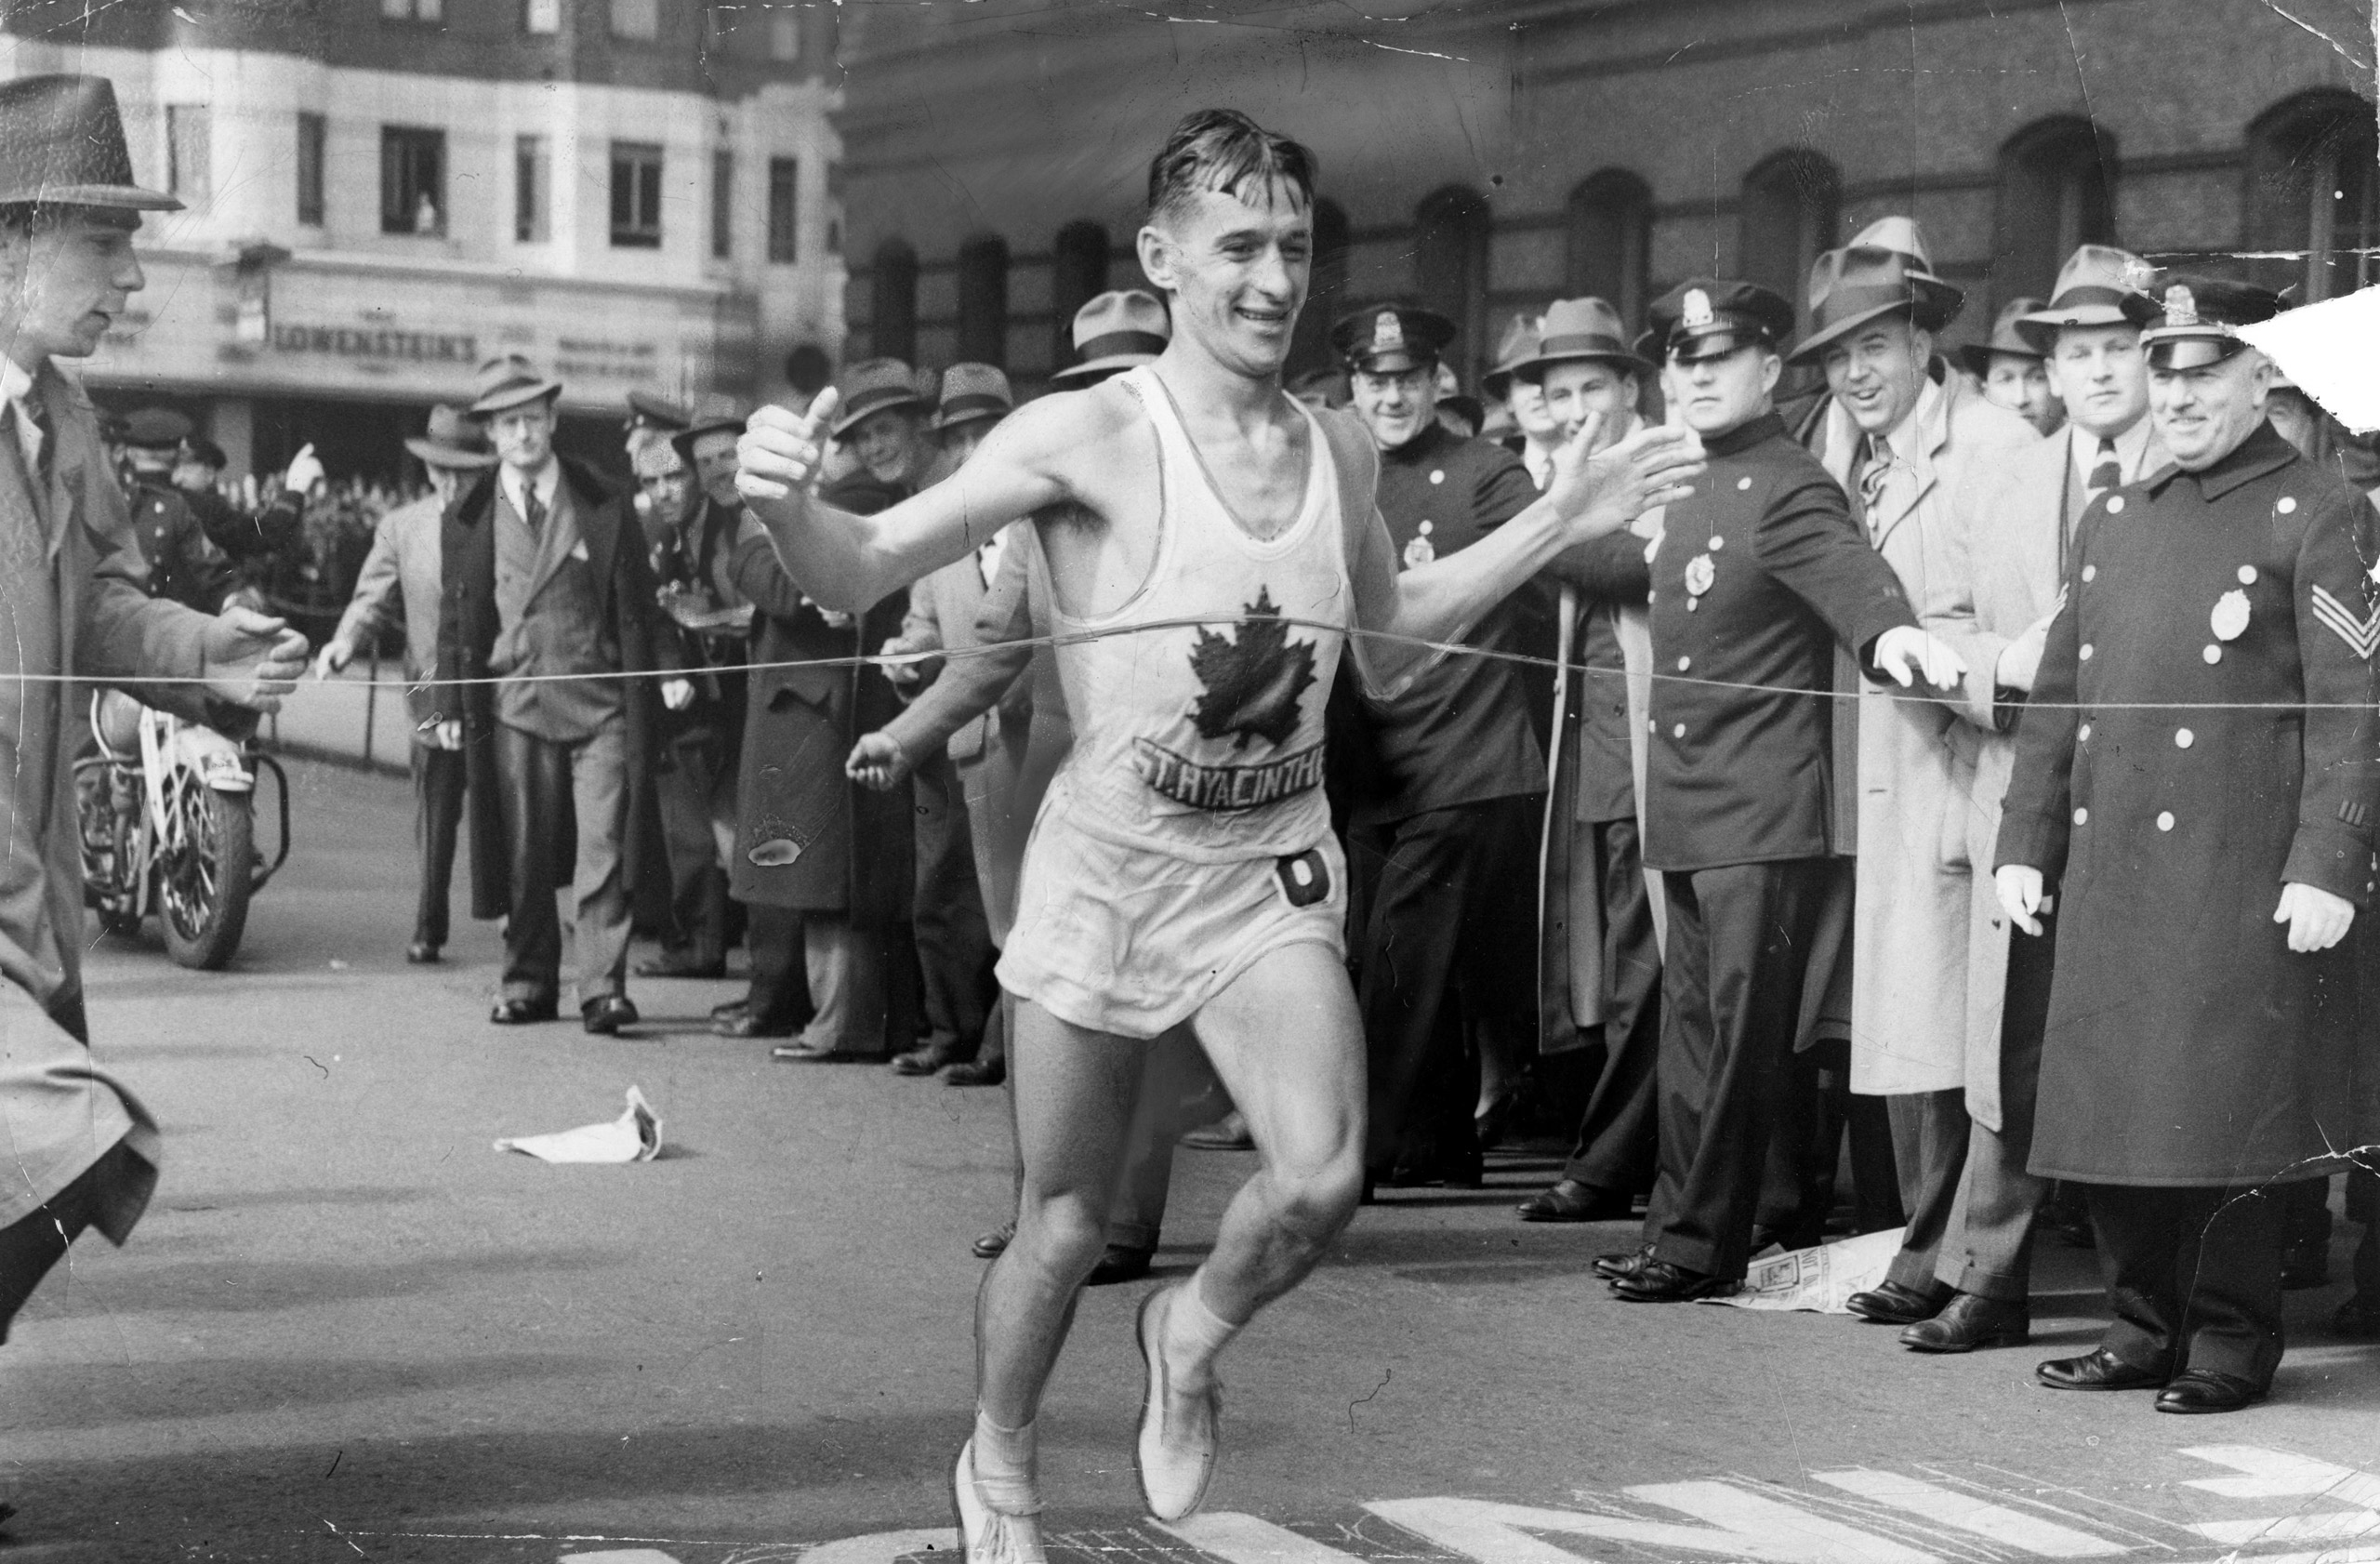 Gerard B. Cote, winner of the Boston Marathon in 1940.